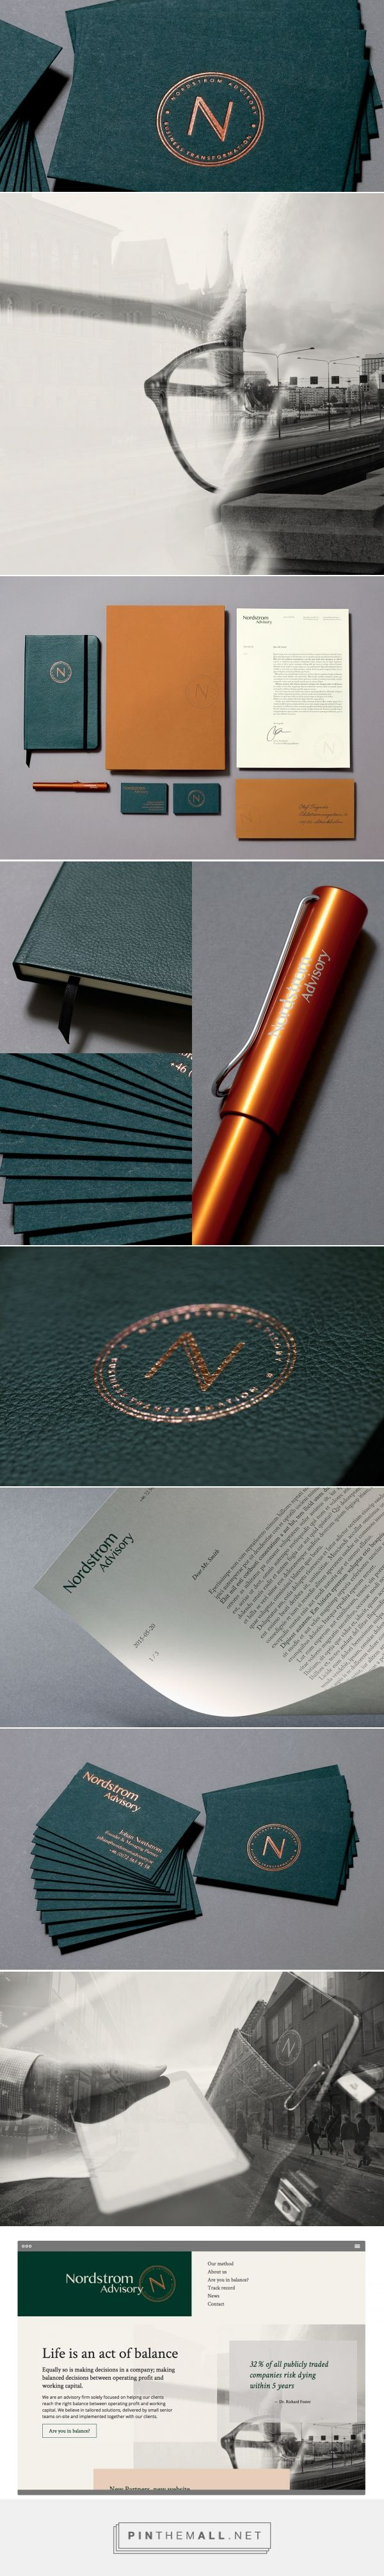 Nordstrom Advisory Branding by Sunny at Sea | Fivestar Branding Agency – Design and Branding Agency & Curated Inspiration Gallery